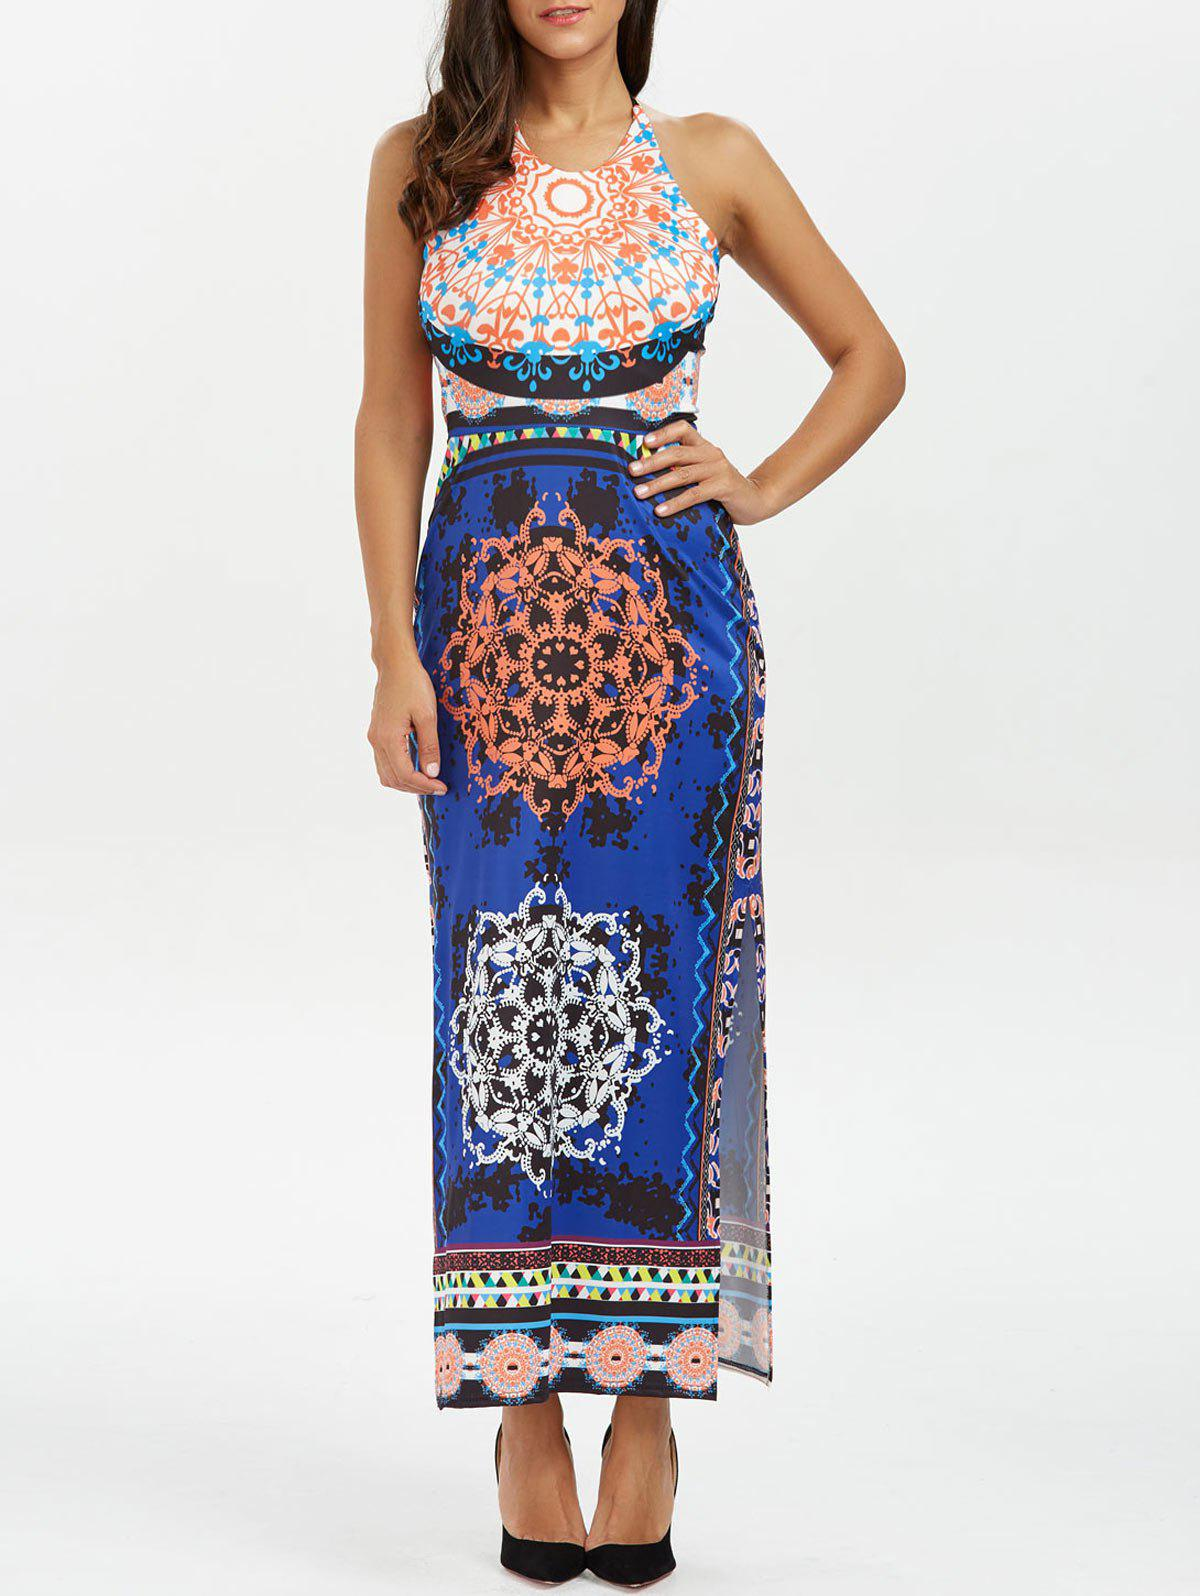 Backless Halter Neck Tribal Print Boho Long Dress - DEEP BLUE XL